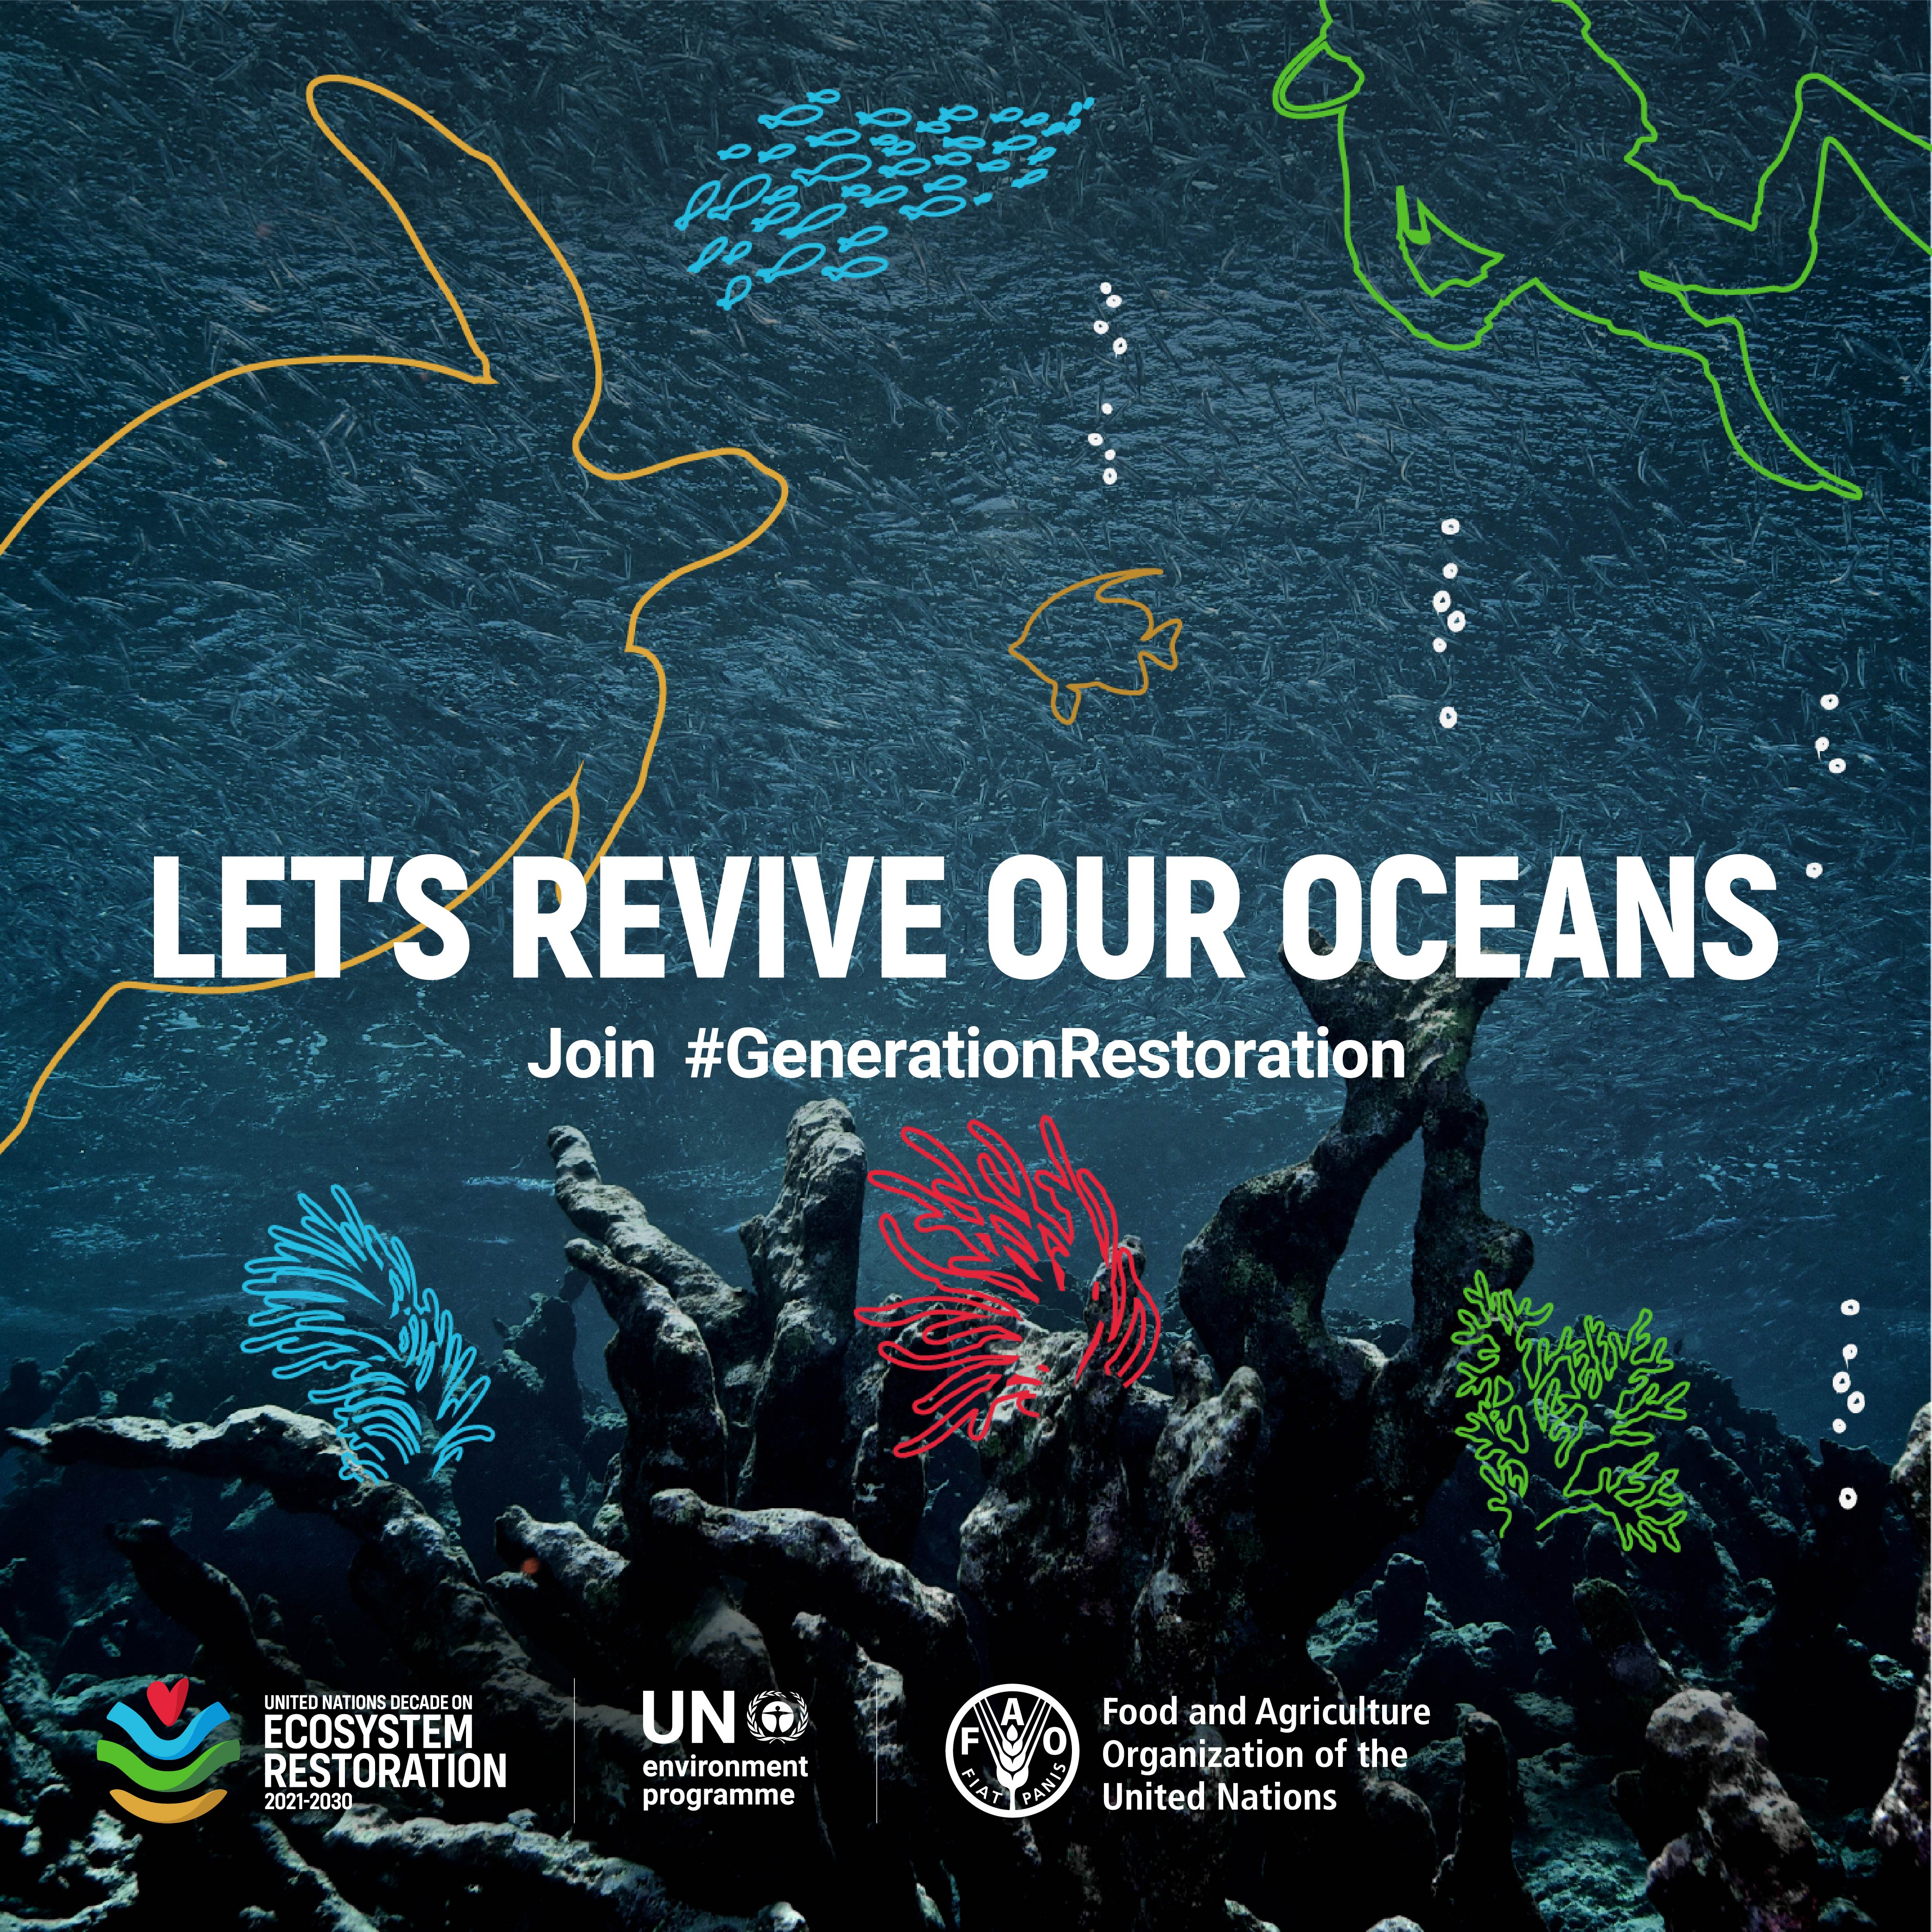 2021 WED poster that reads: Let's revive our oceans